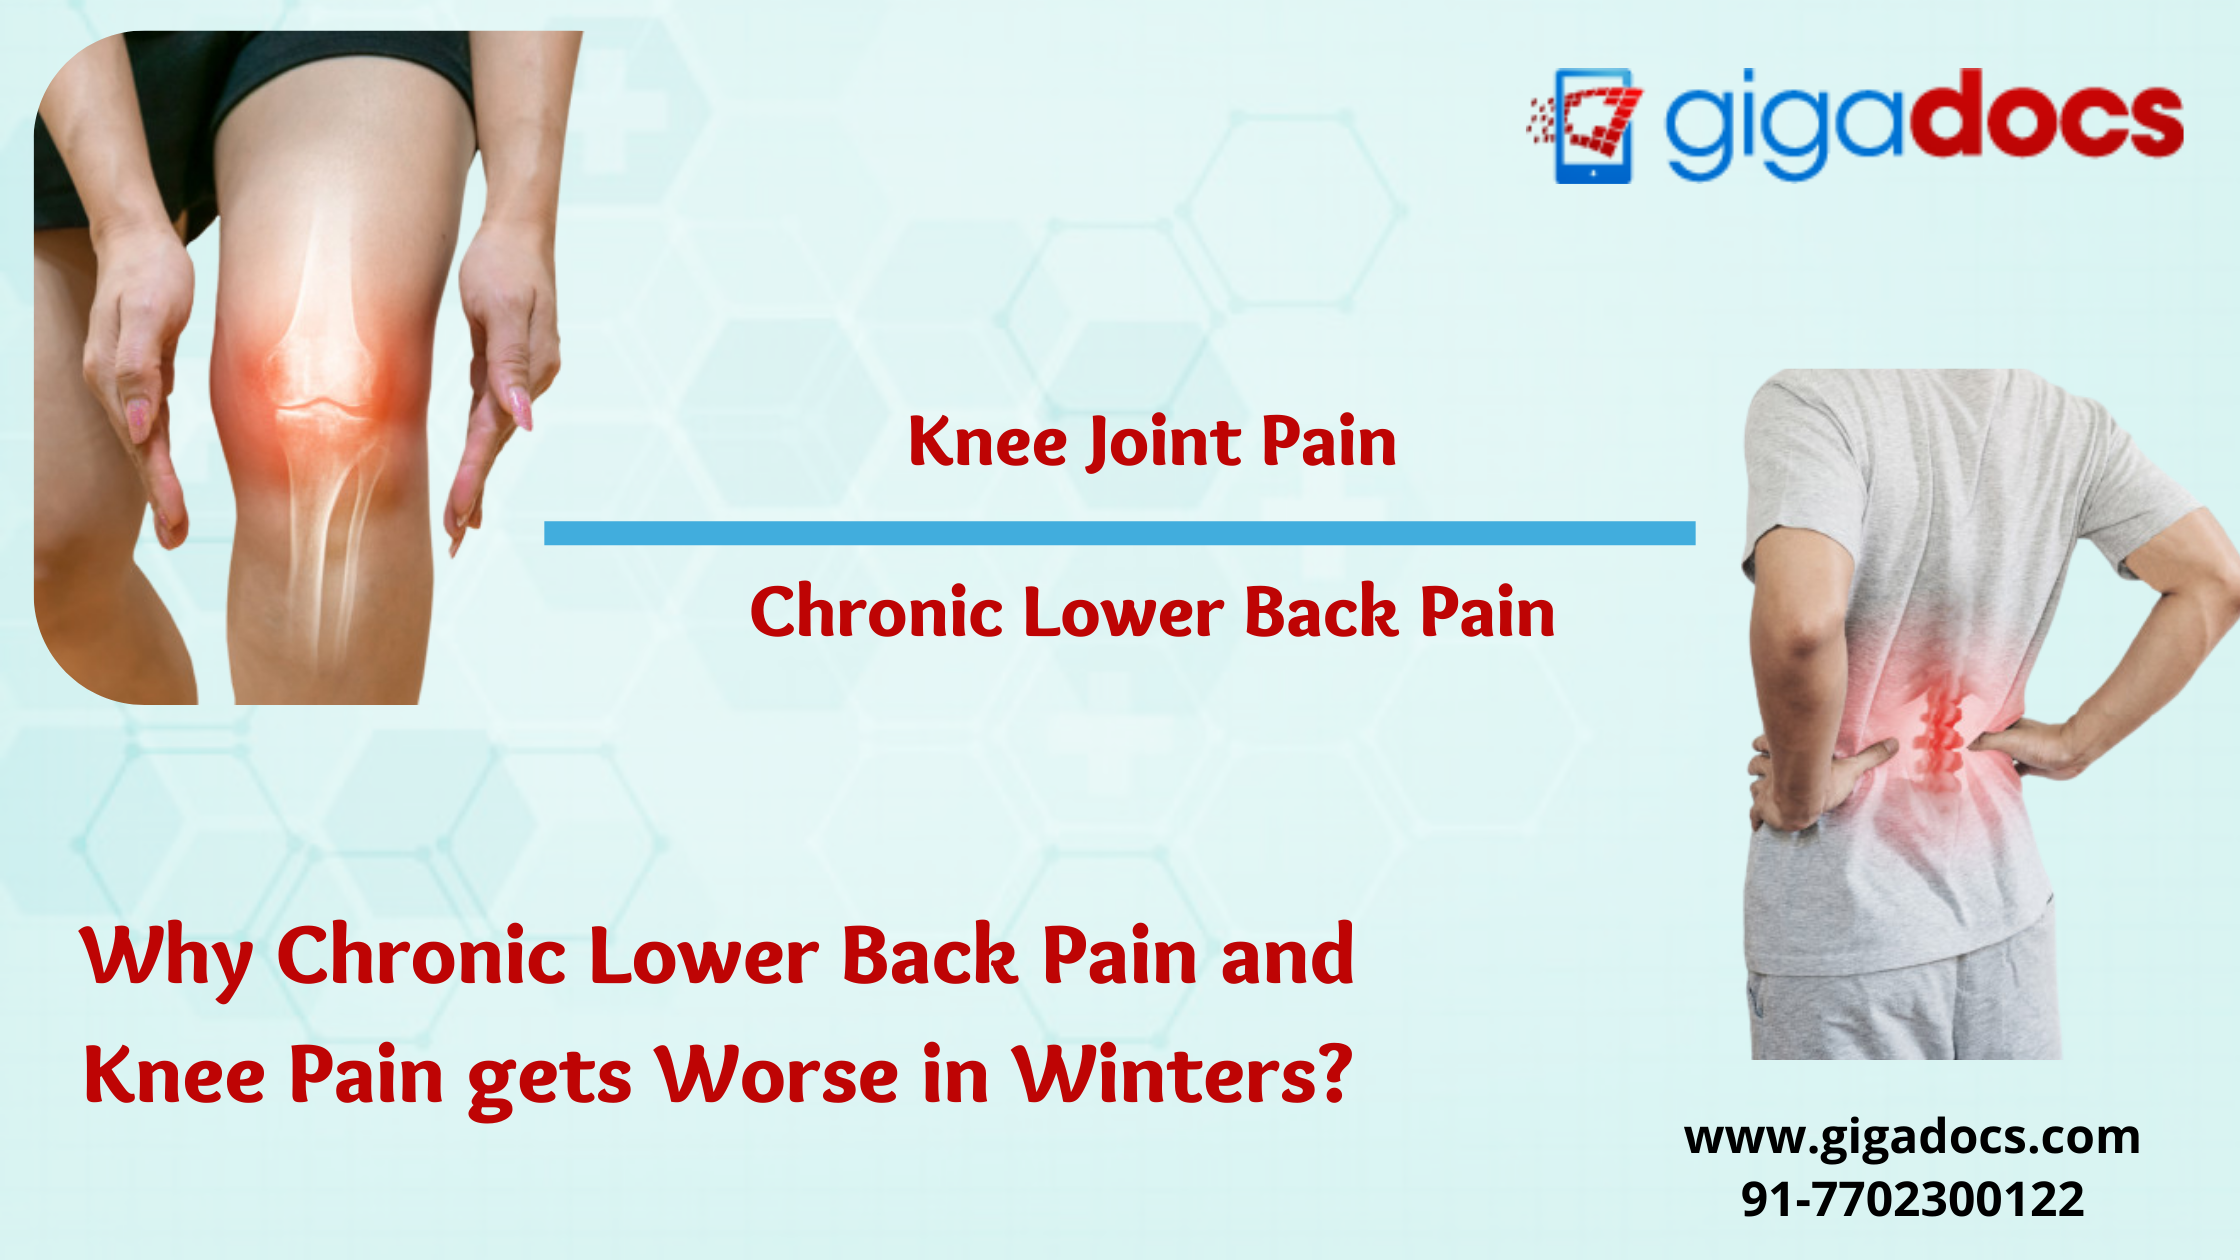 Chronic Lower Back Pain and Knee Pain